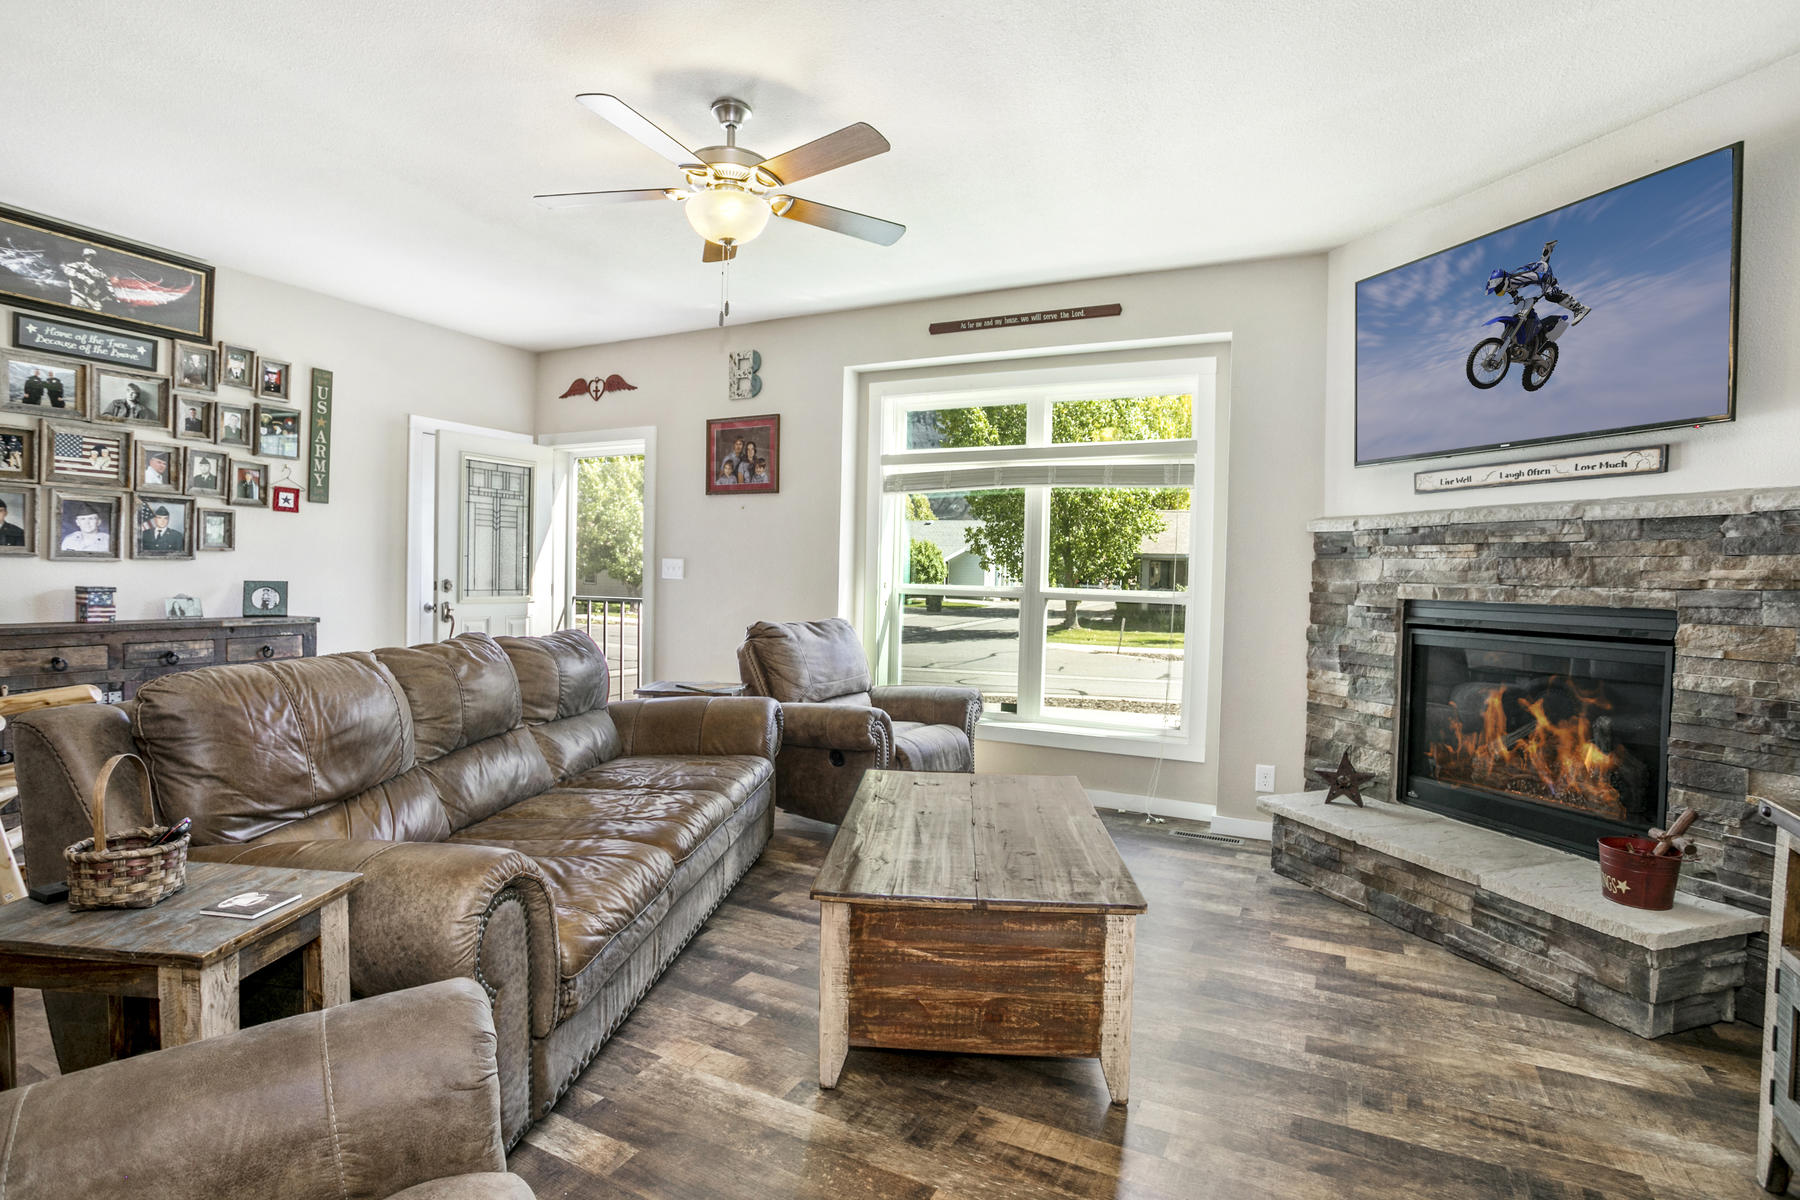 Single Family Home for Active at Upgraded ranch style home in Two Rivers Village 158 Bluegill Loop Gypsum, Colorado 81637 United States